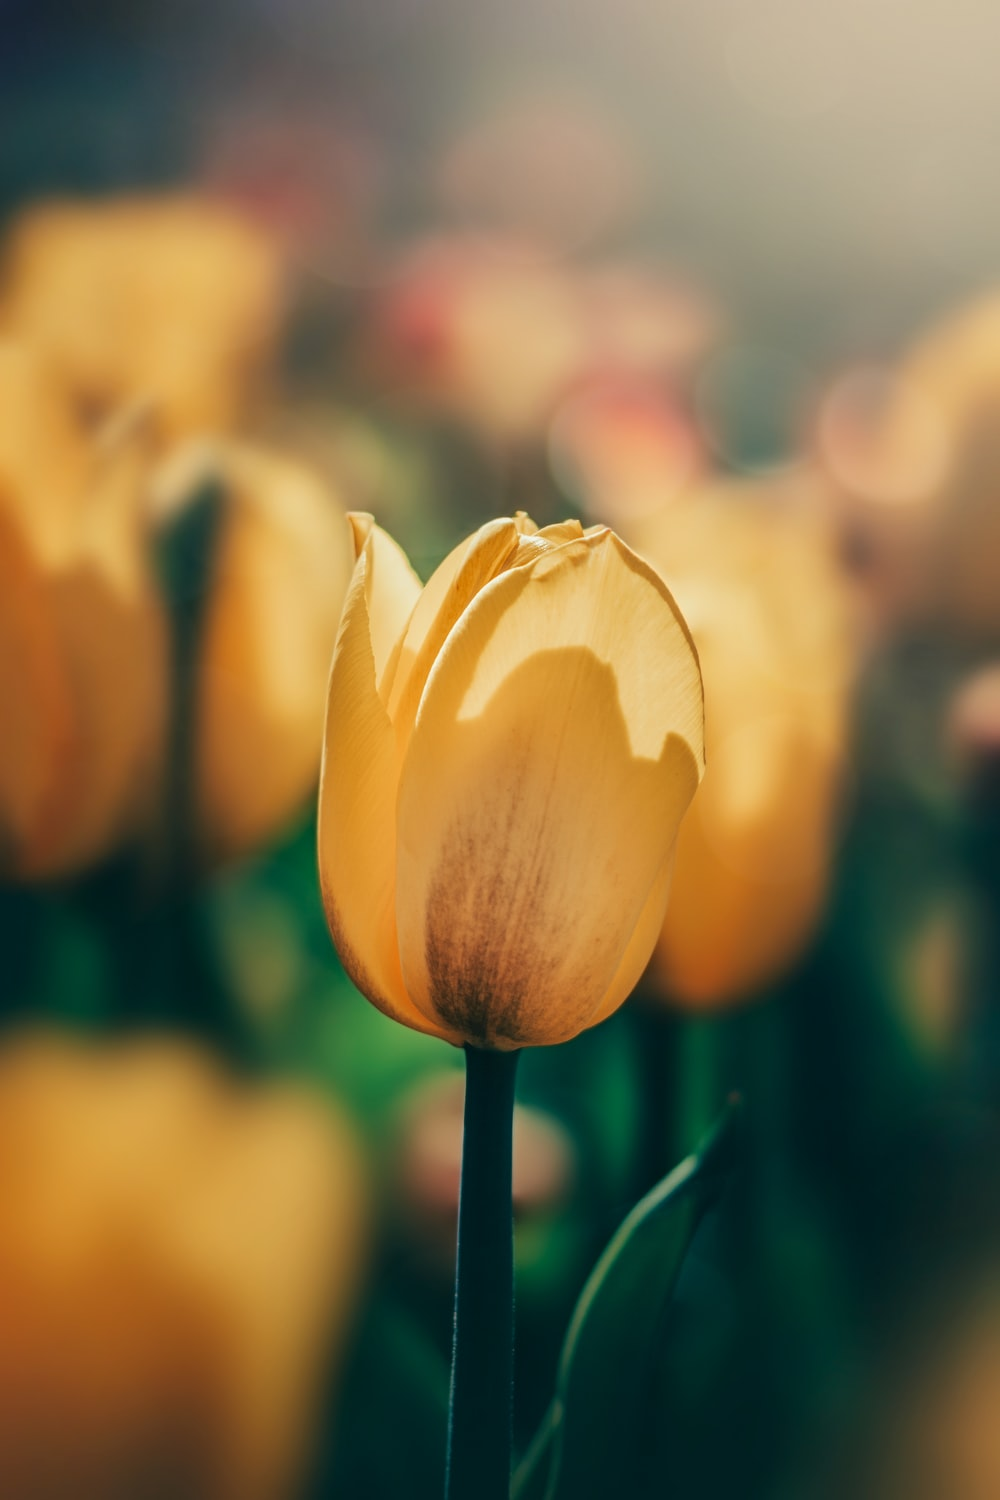 yellow tulip in bloom during daytime